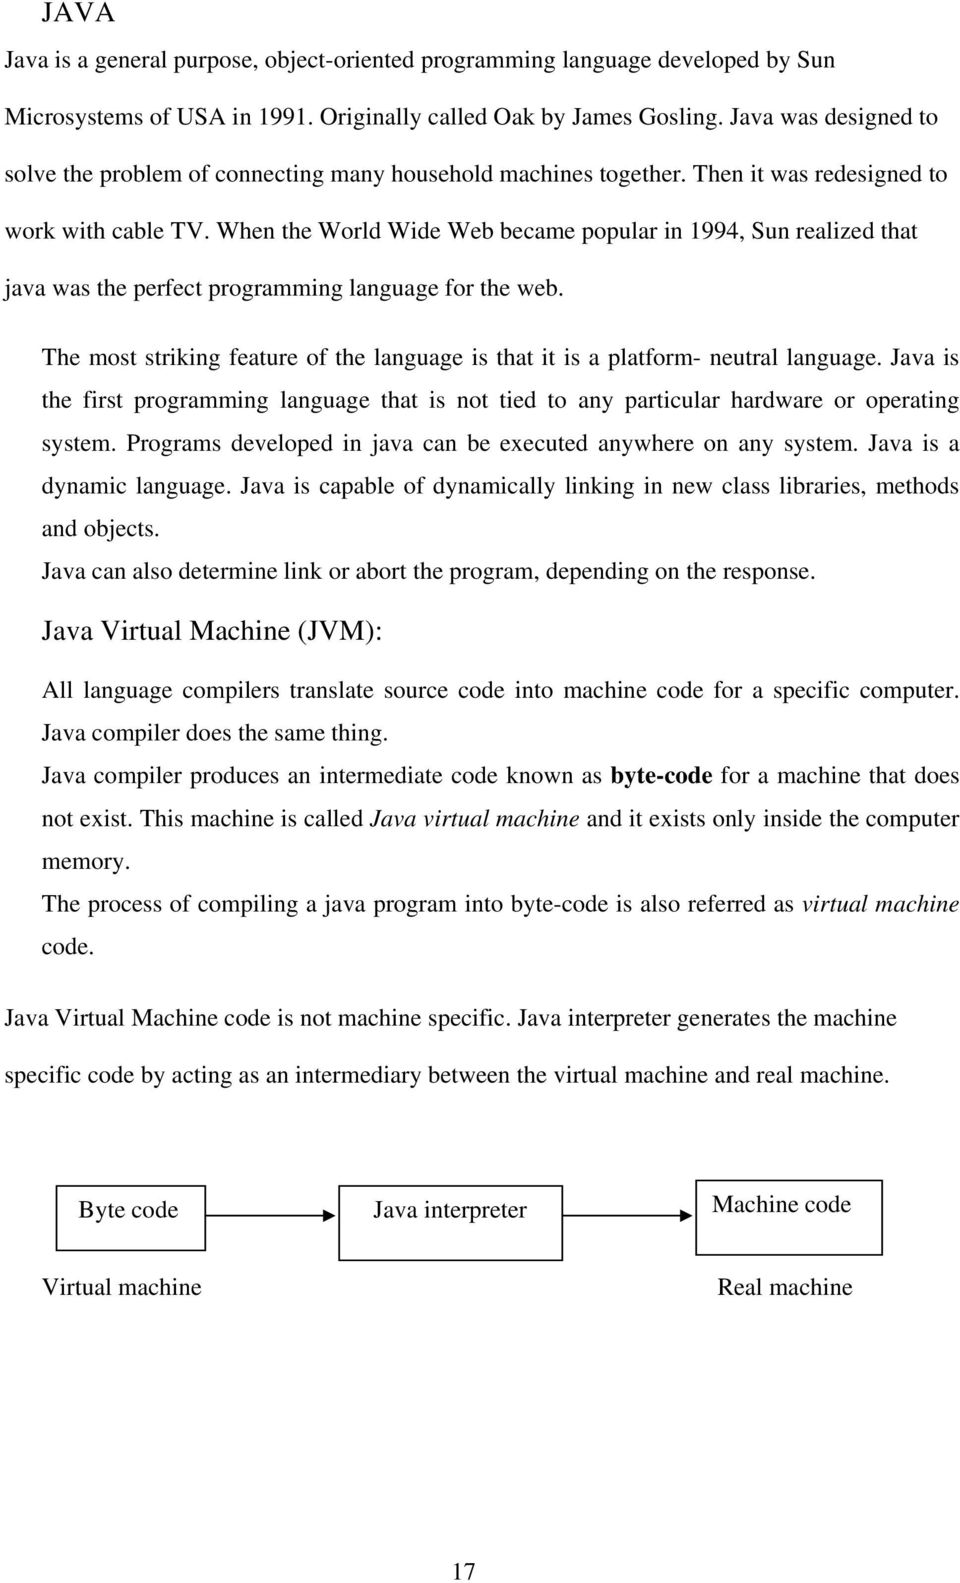 When the World Wide Web became popular in 1994, Sun realized that java was the perfect programming language for the web.